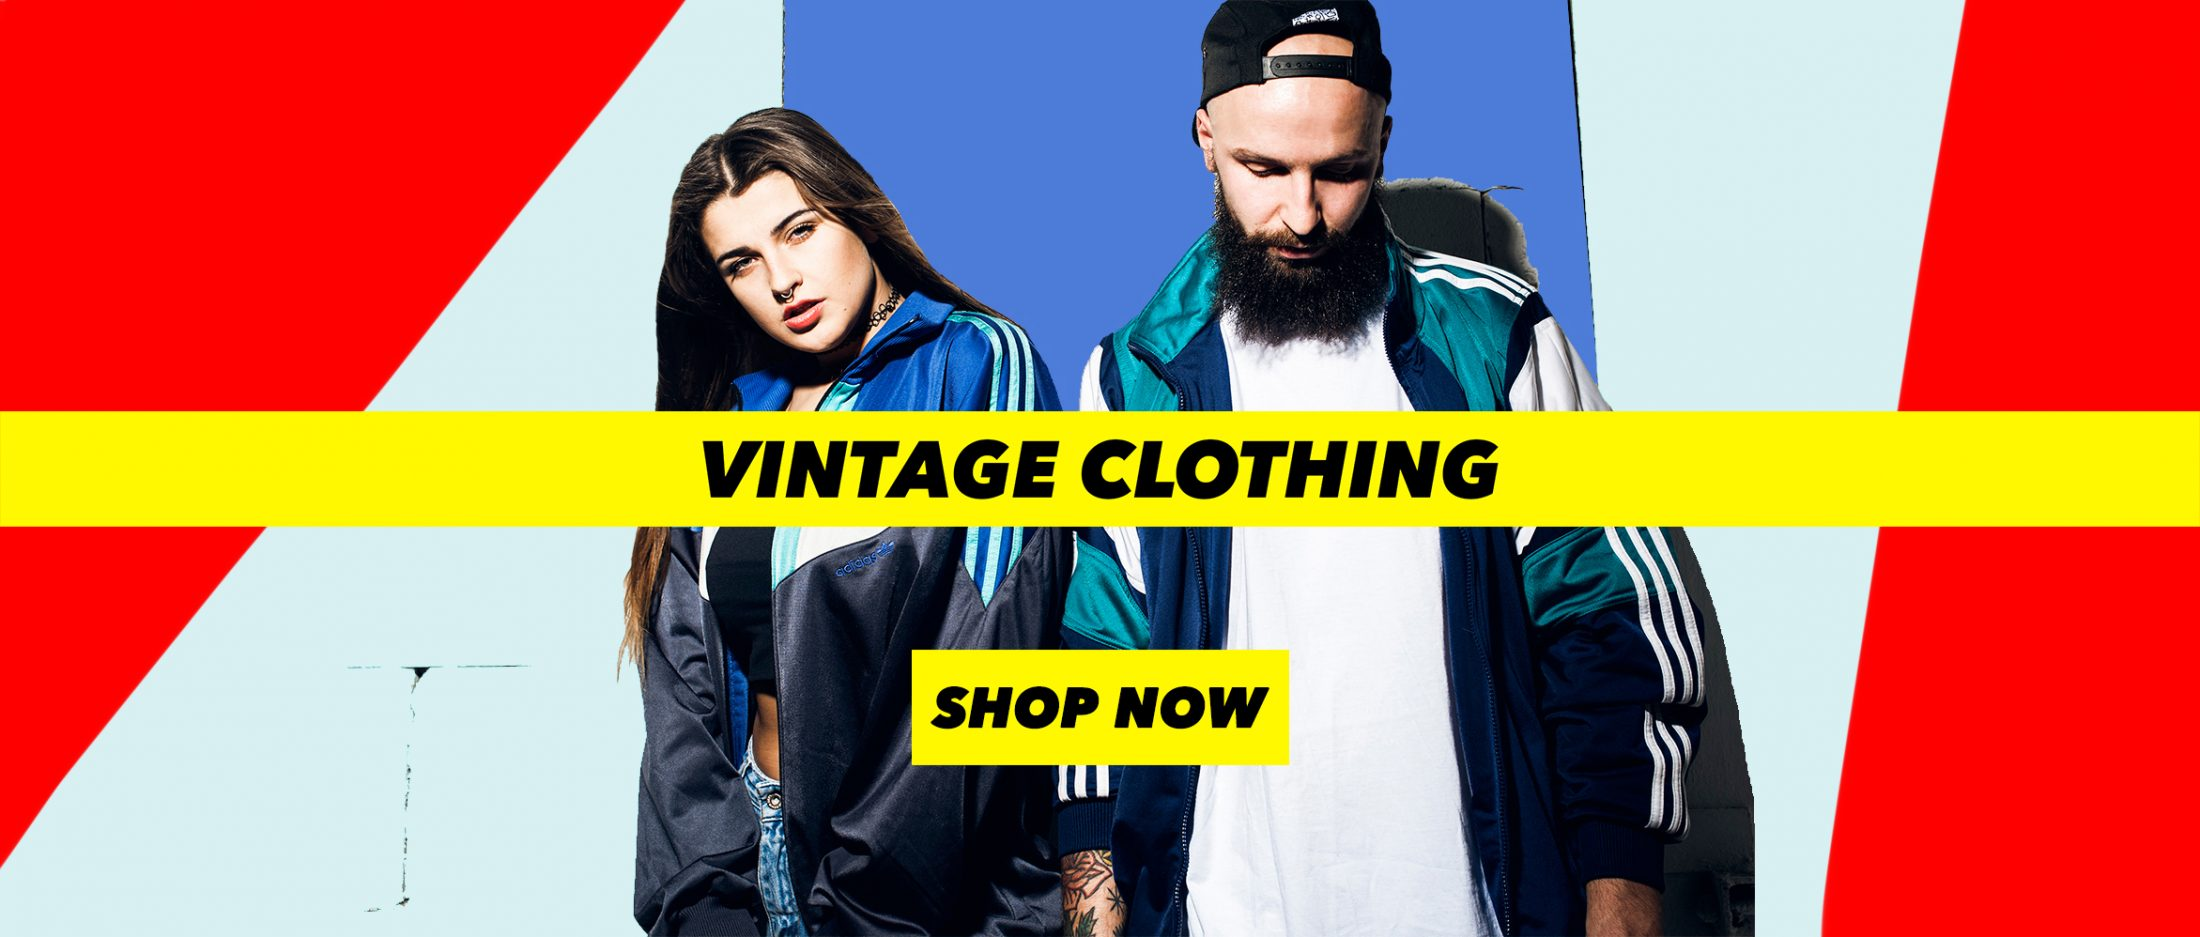 Vintage clothing online store